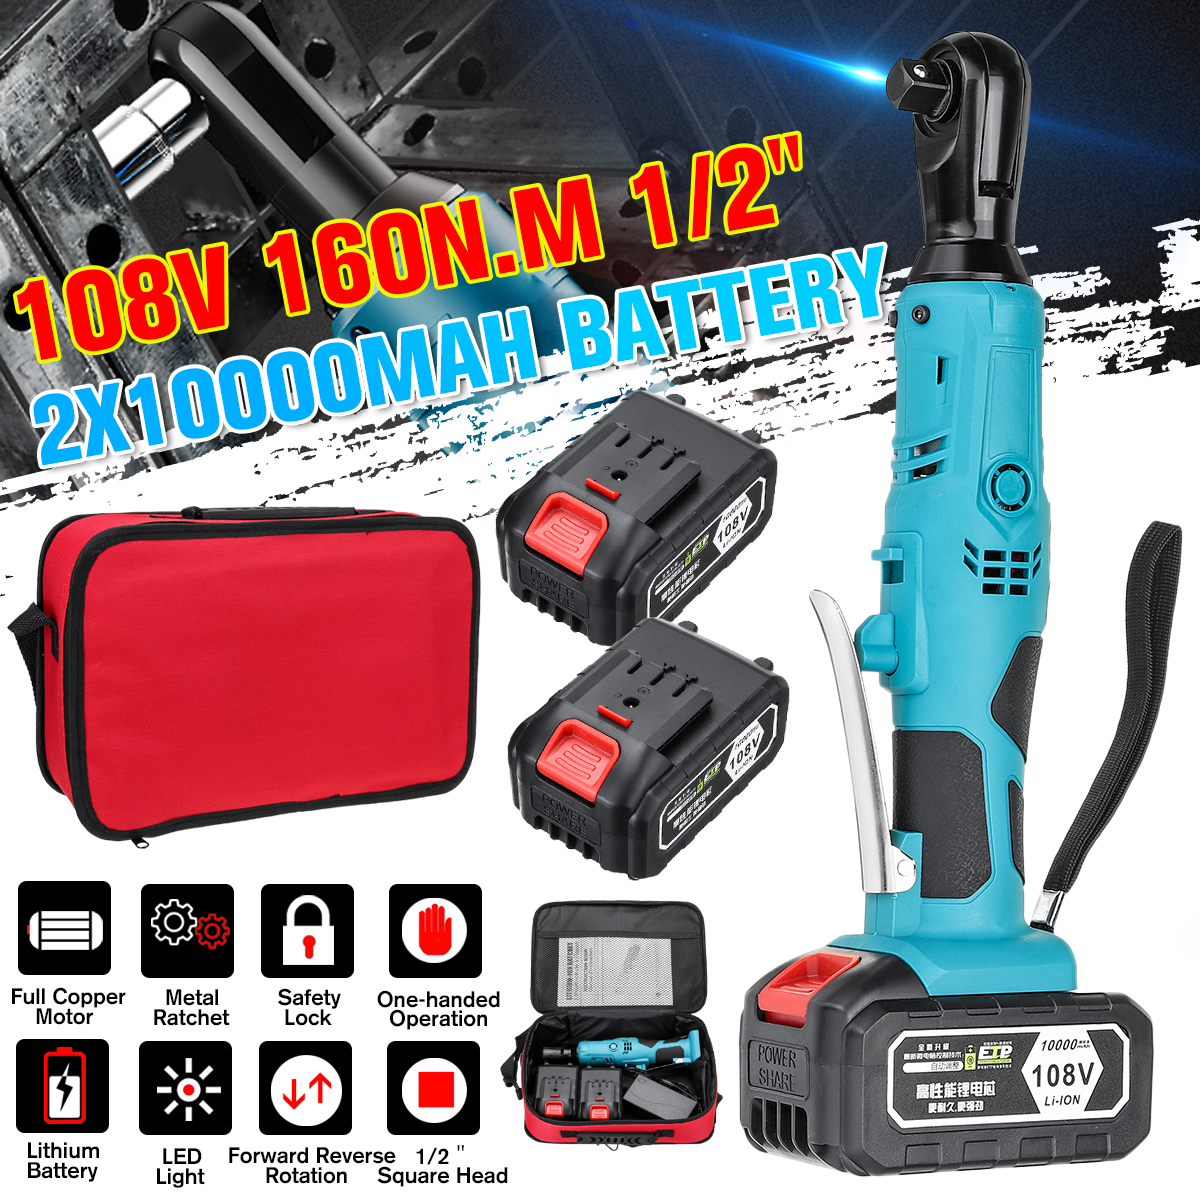 160N m Cordless Electric Wrench 108V Ratchet Wrench Repair Tool Rechargeable Right Angle Wrench with 2 Battery Charger Kit